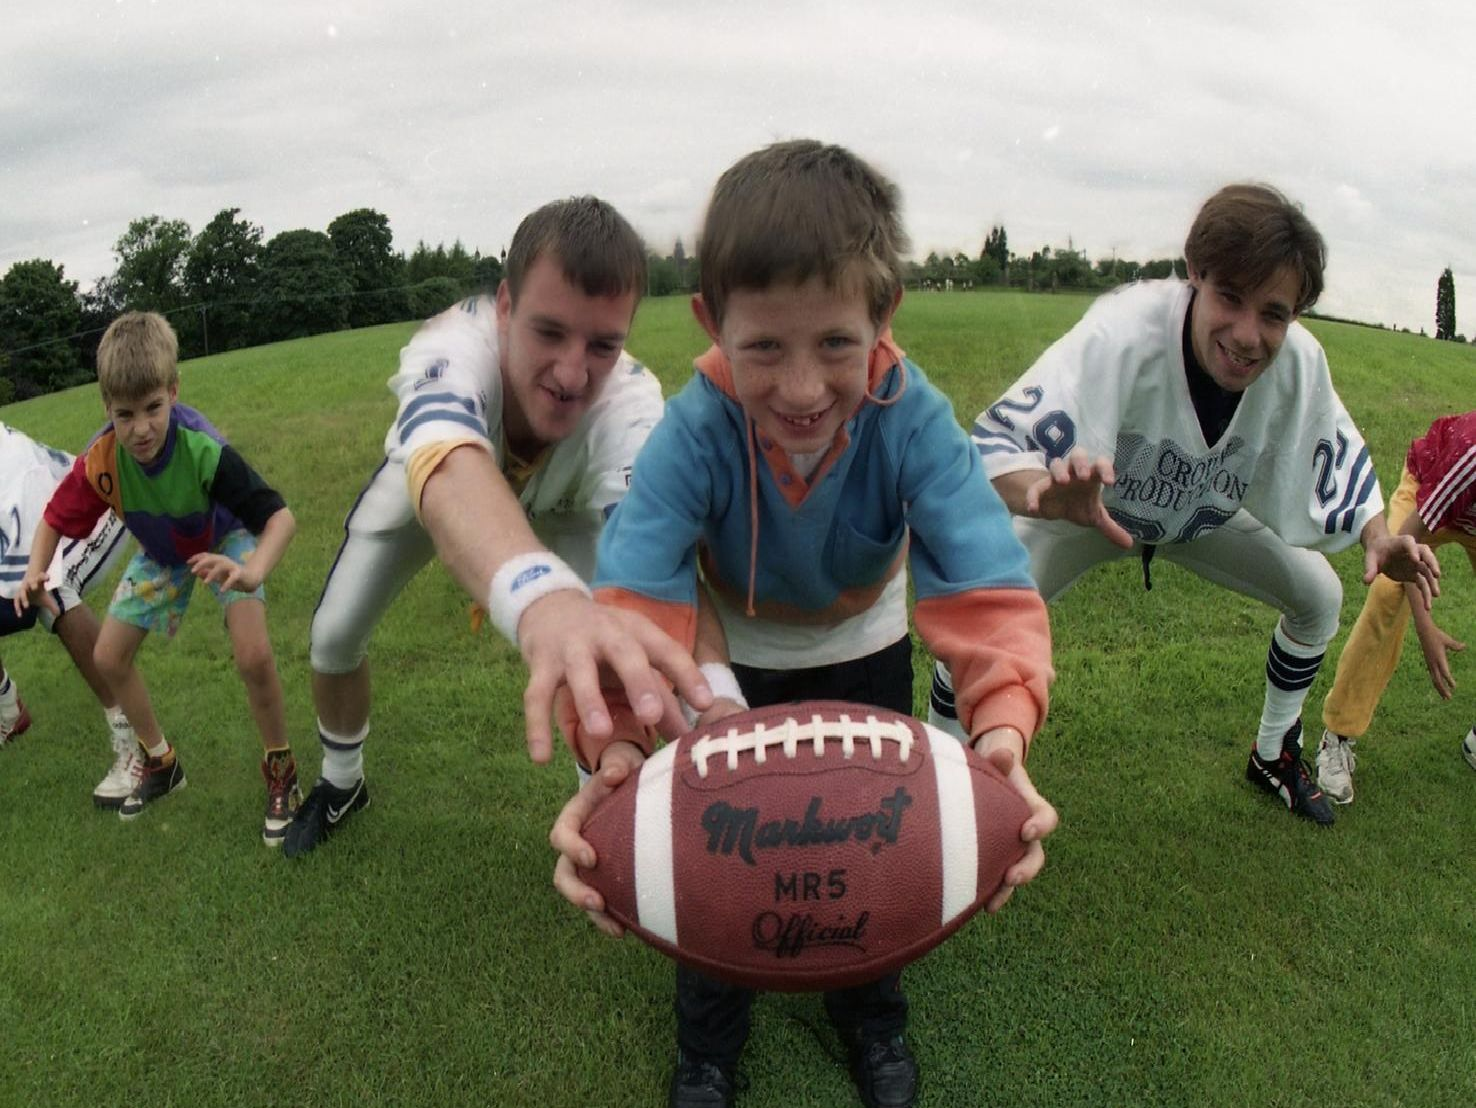 Youngsters taking part in a week of sports at a top Lancashire private school are finding out just how tough you need to be to play American football. The children, aged five to 15, played a variety of sports at Stonyhurst College in the Ribble Valley